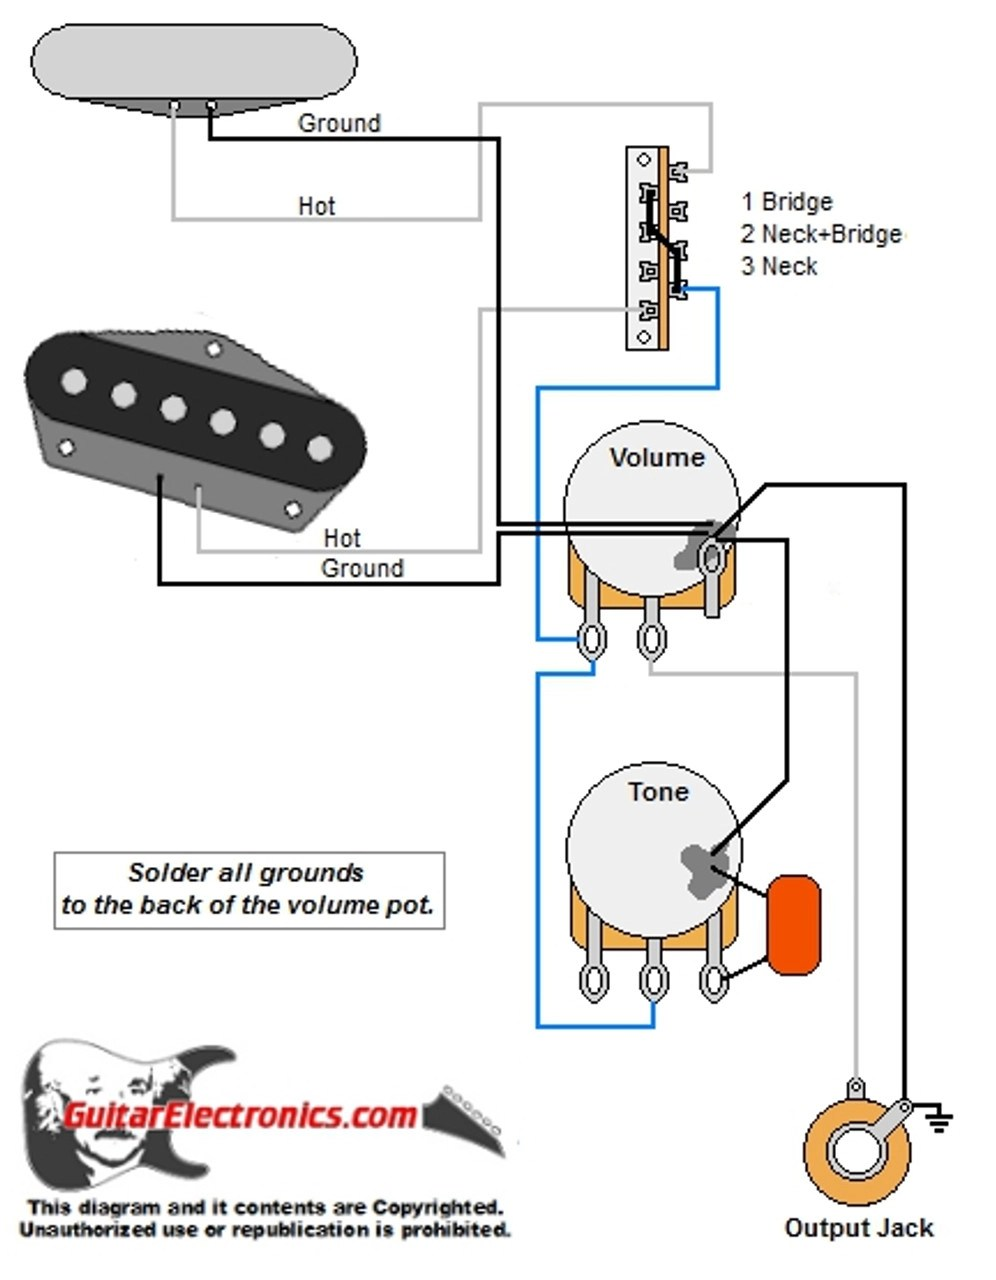 Guitar Wiring Diagram 2 Humbuckers 5way Lever Switch 1 Volume 2 Tones